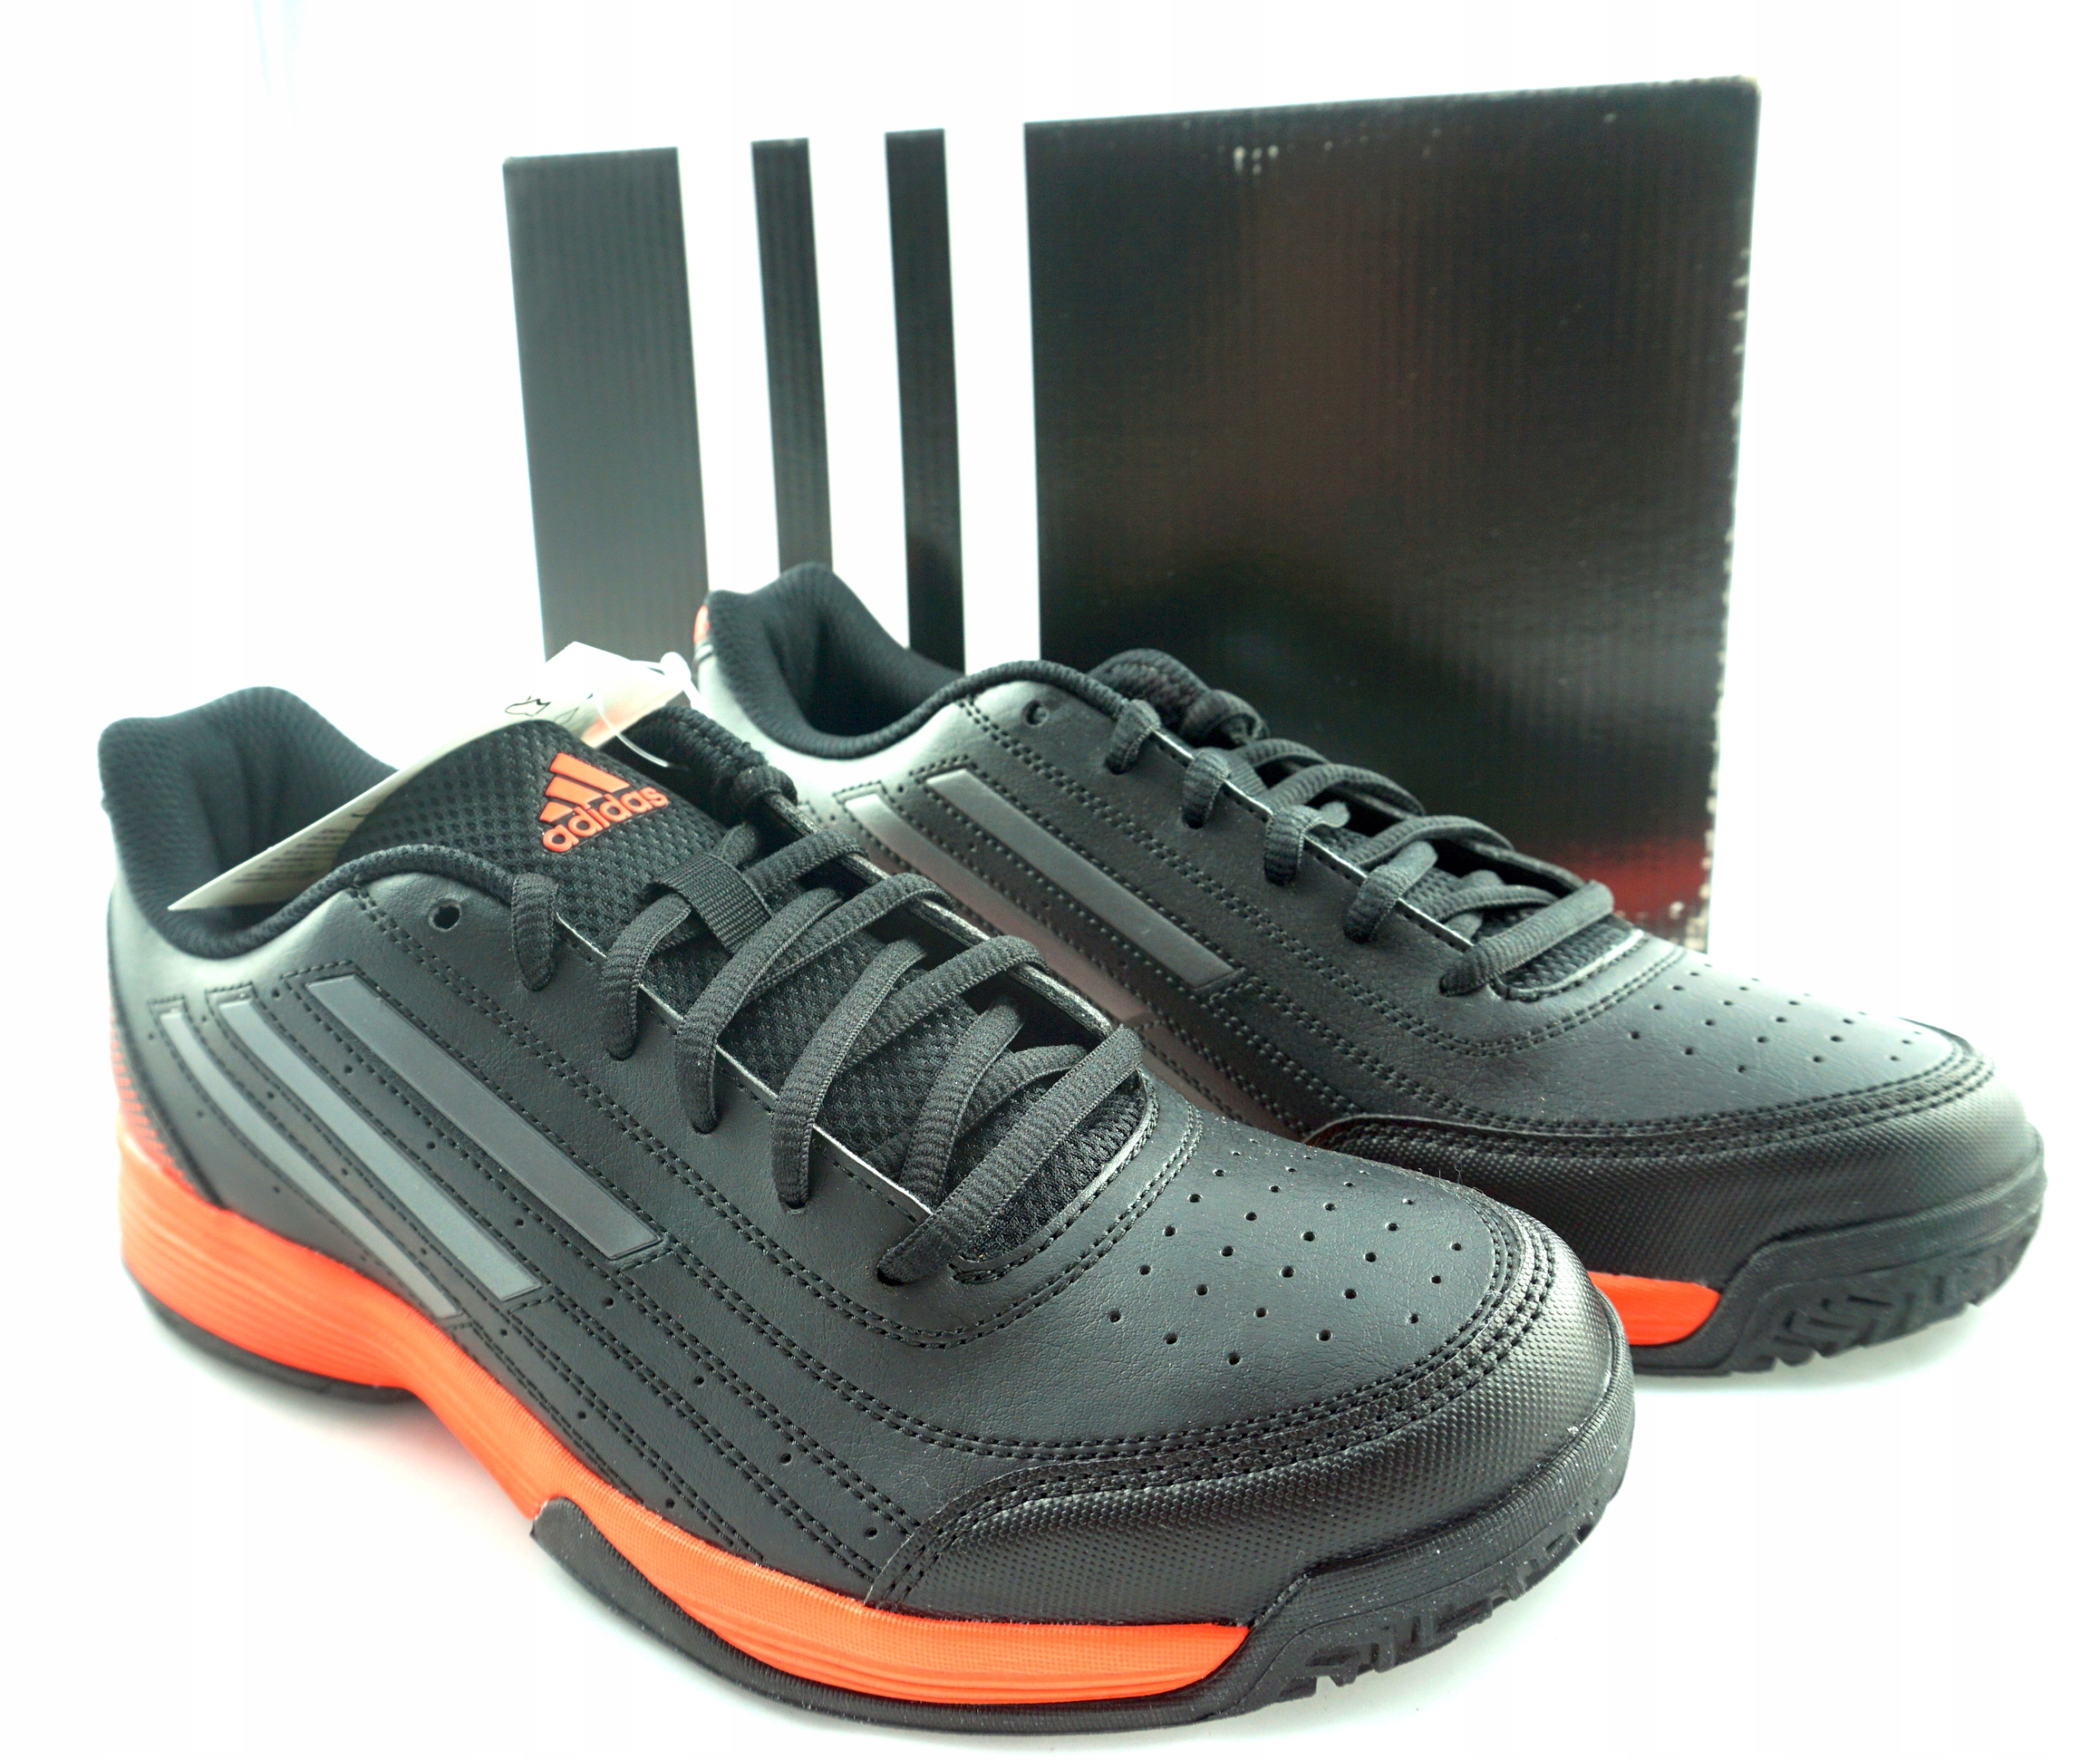 Buty tenisowe Adidas Sonic Attack r. 39 i 13 24